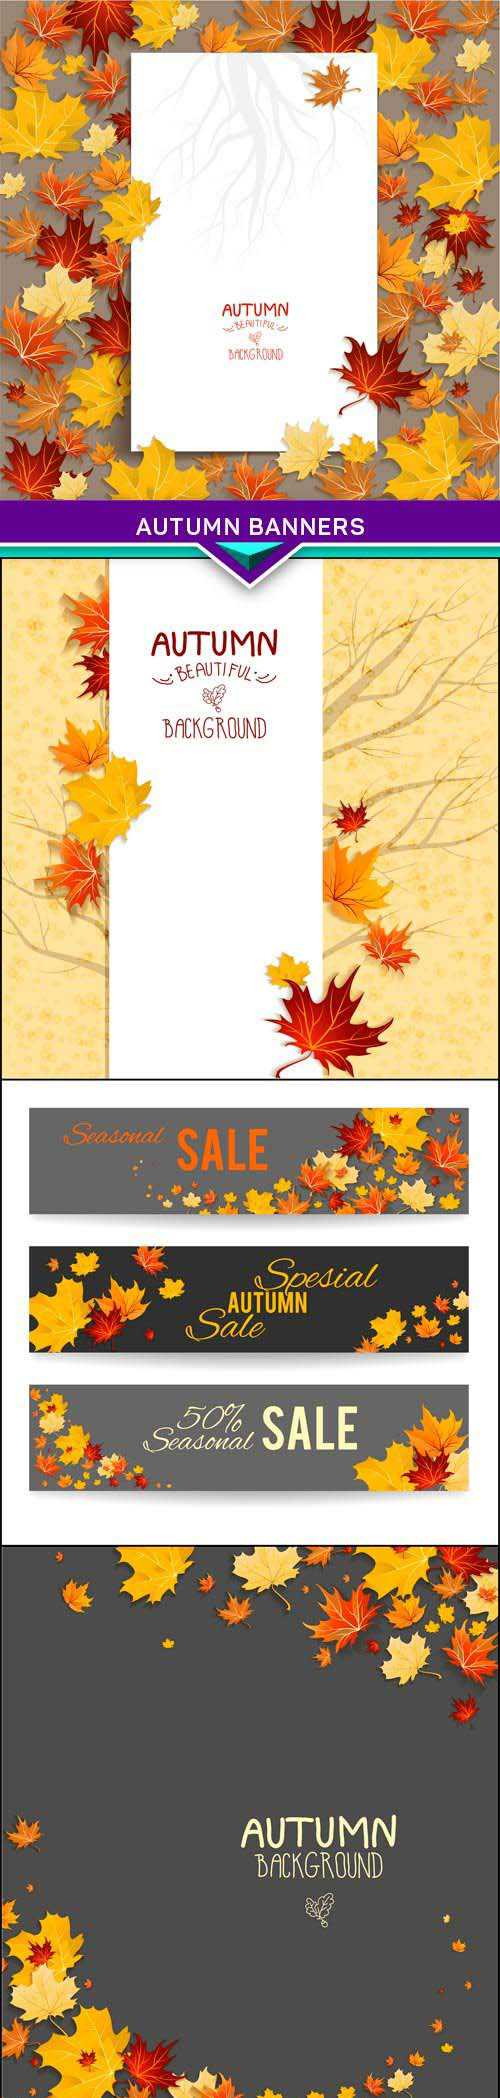 Autumn banners 5X EPS